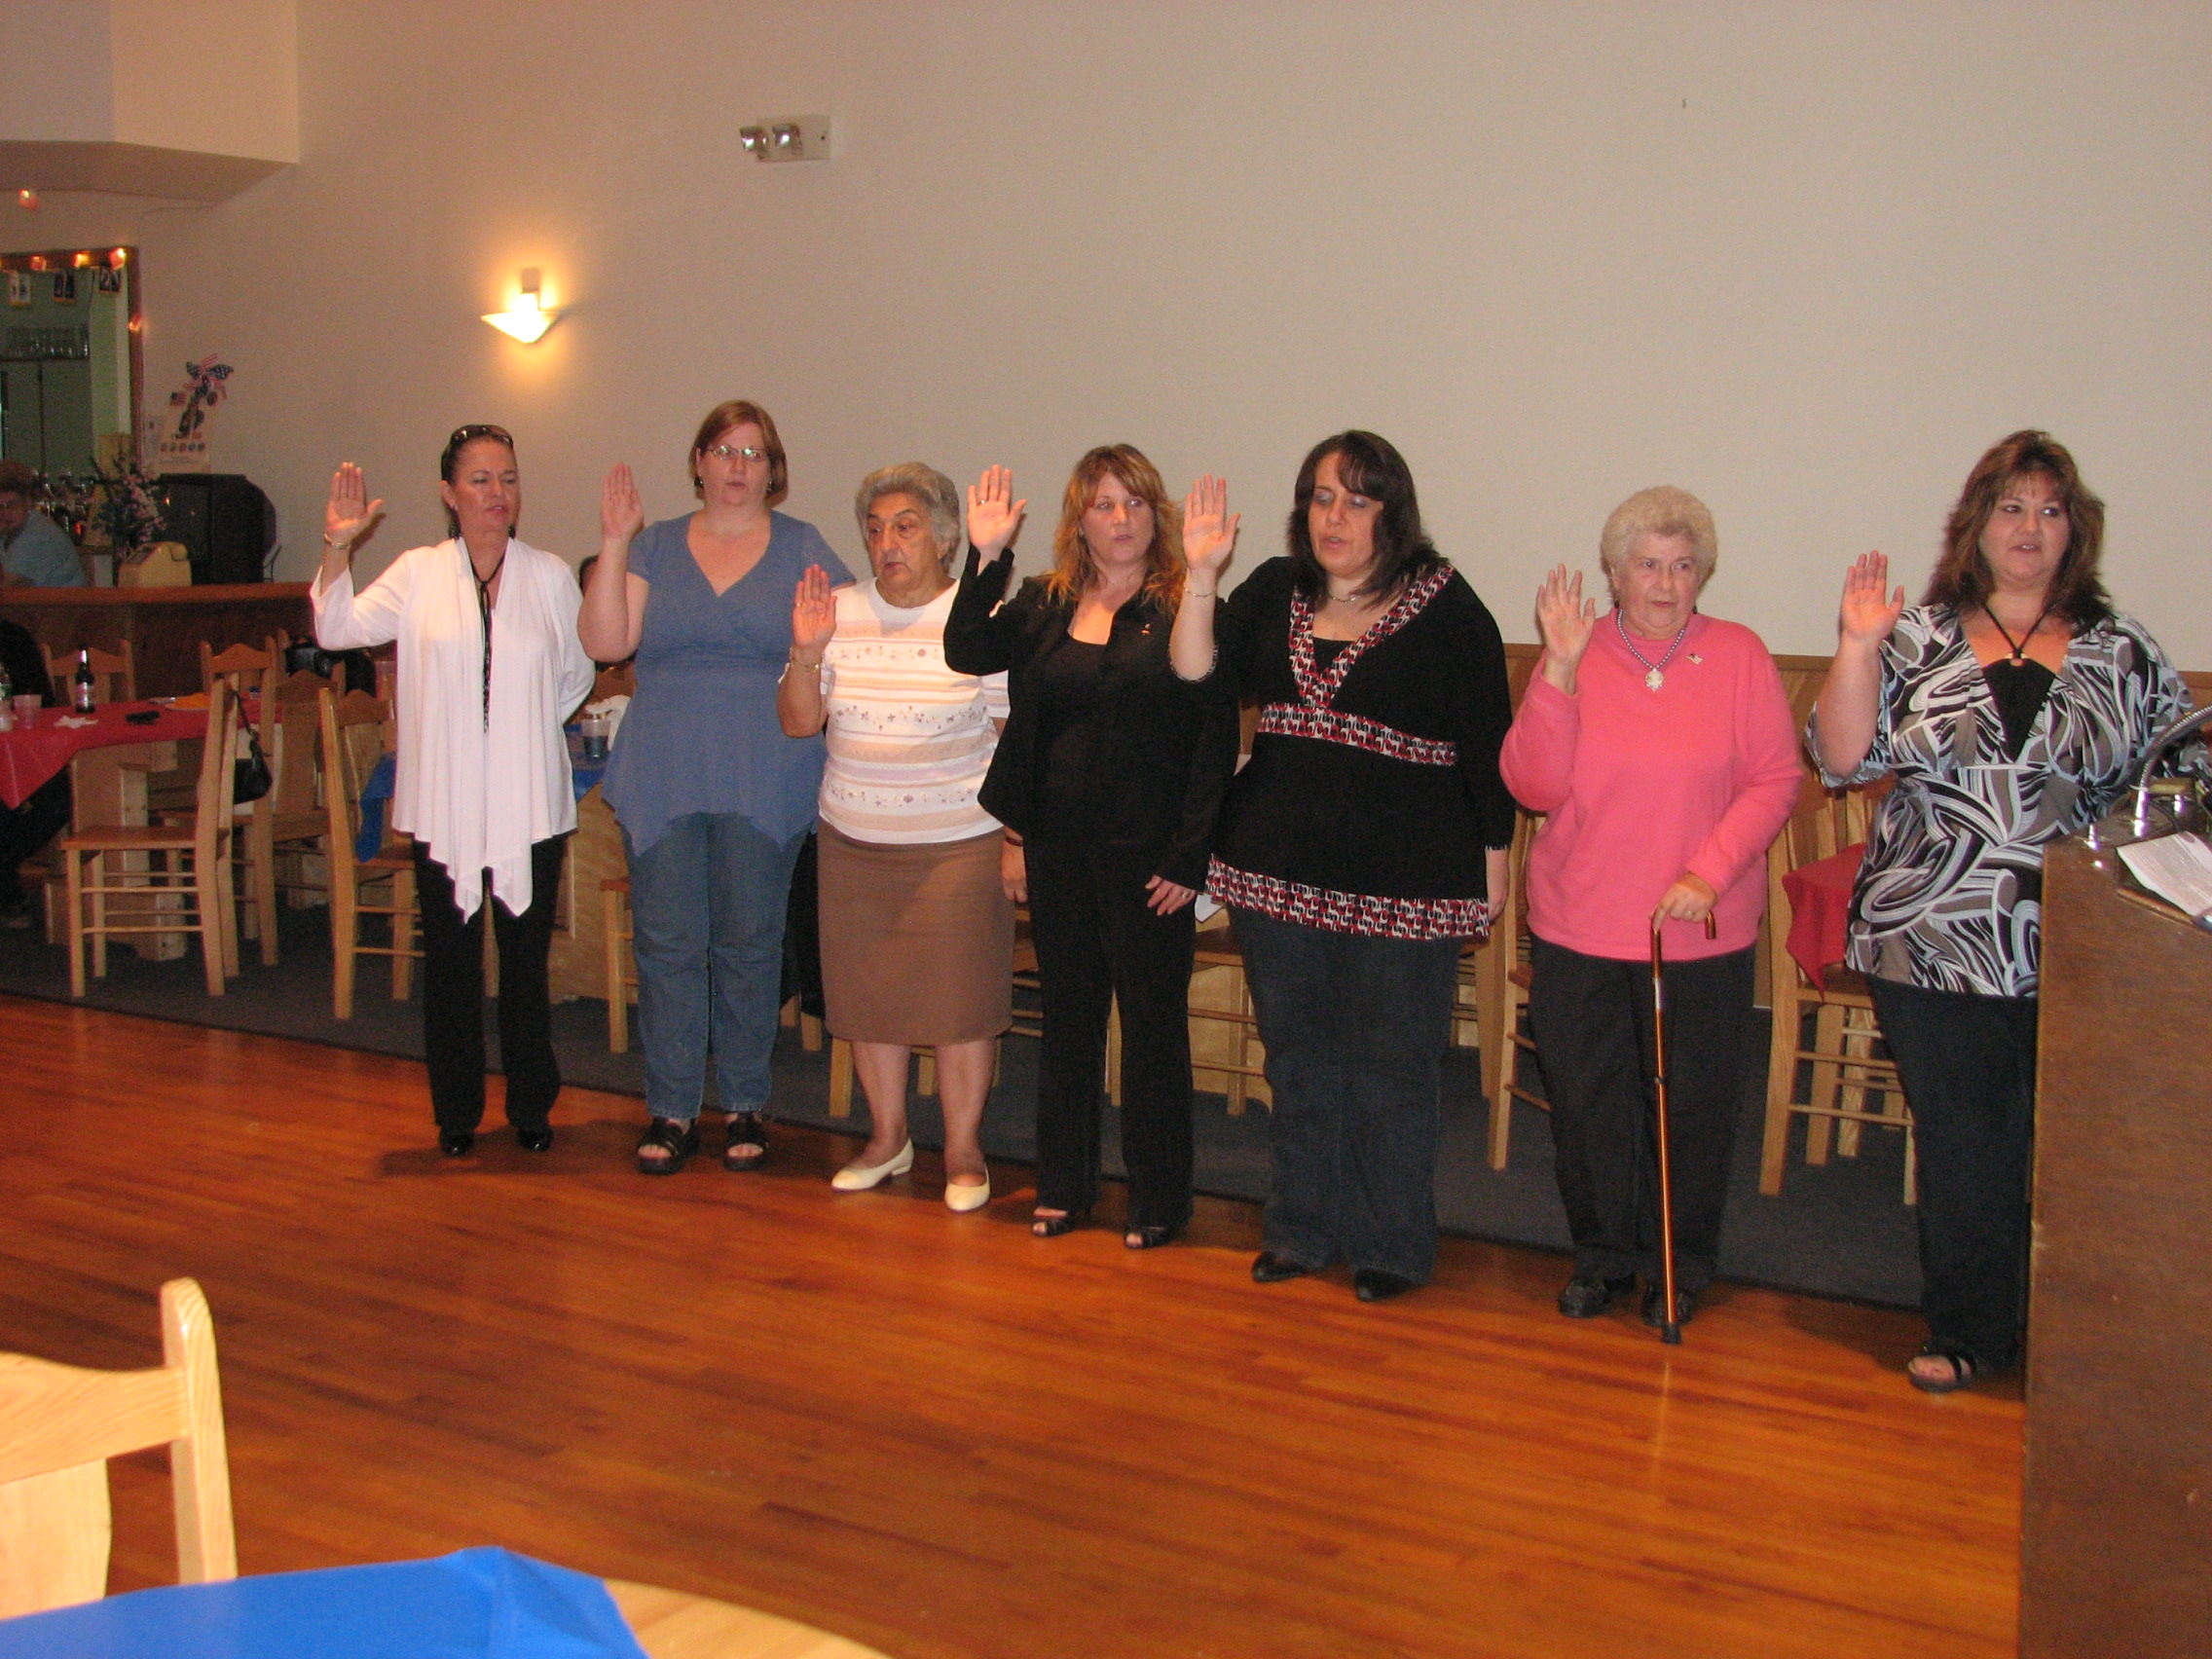 Ladies Auxiliary Officers For The 2009 - 2010 Leigon Year.